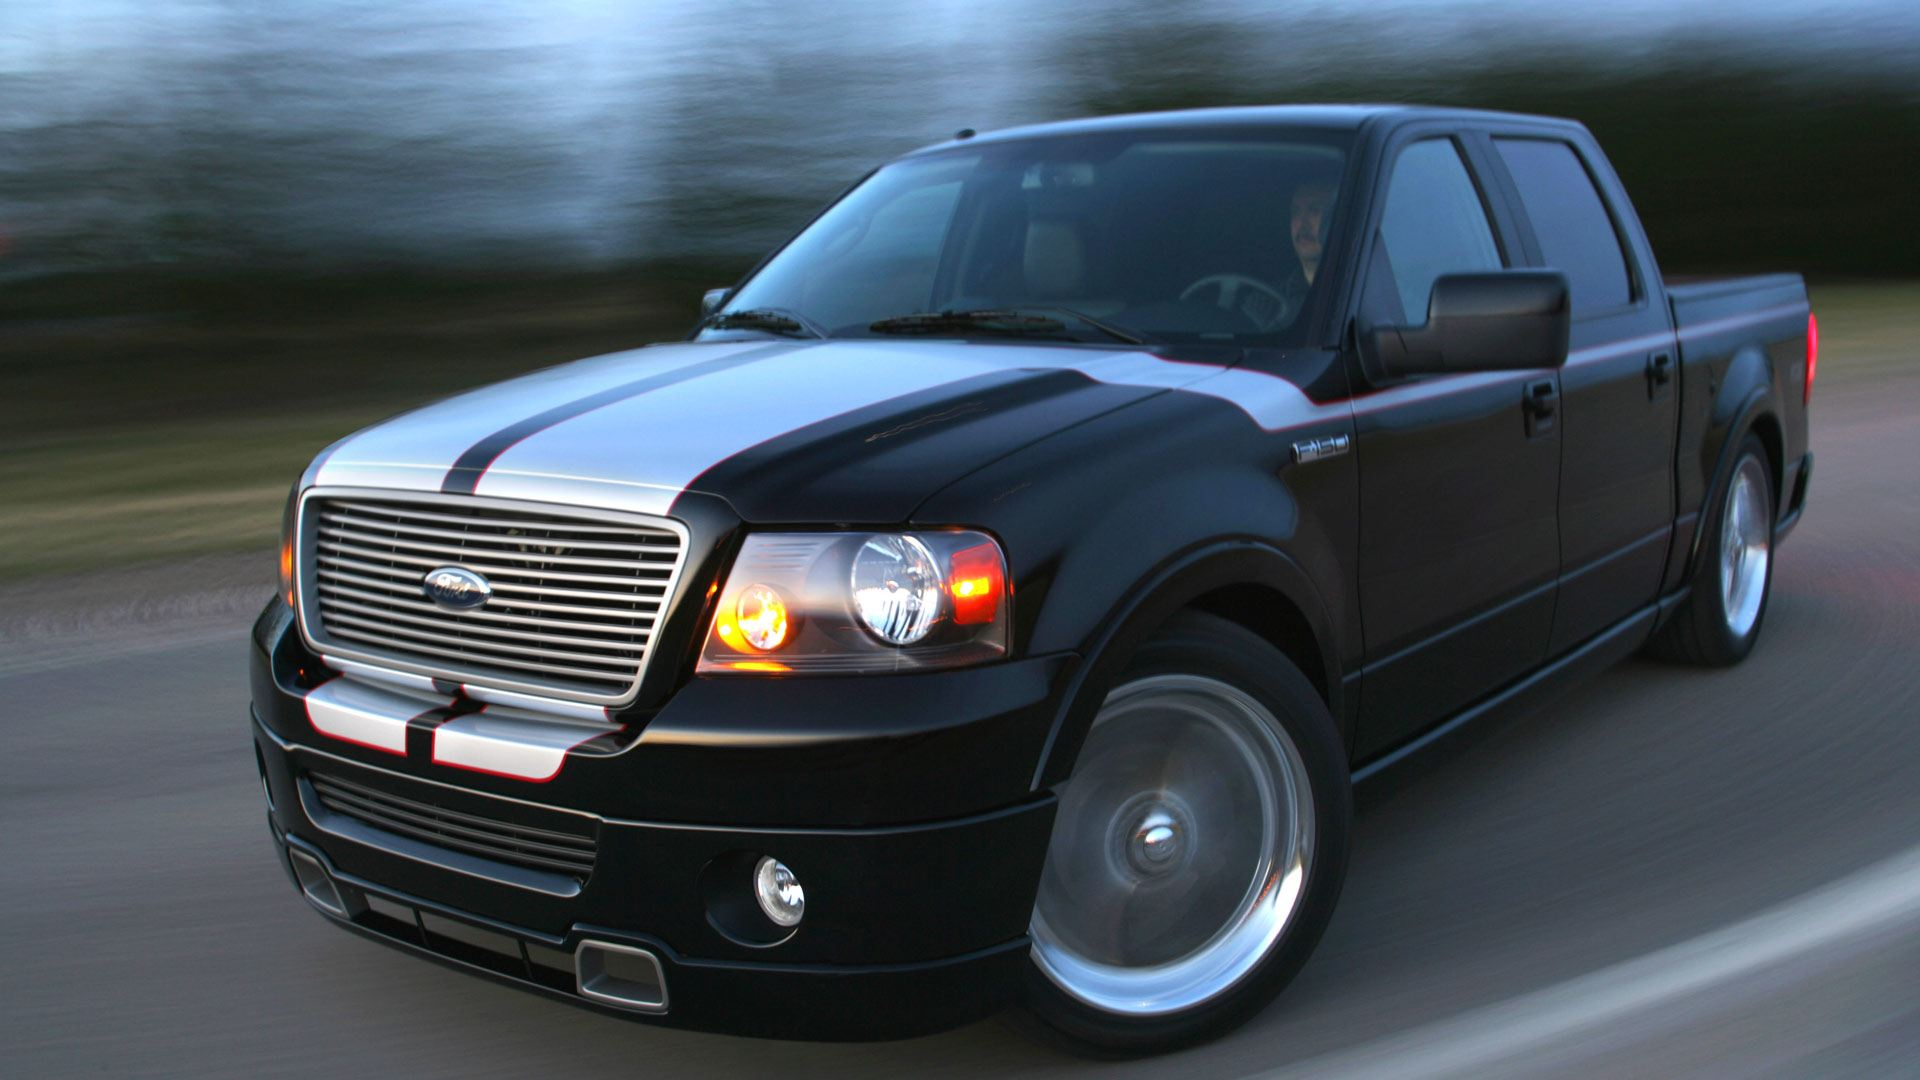 Ford F 150 Price In India >> Ford F-150 Foose Edition Wallpapers - My Site